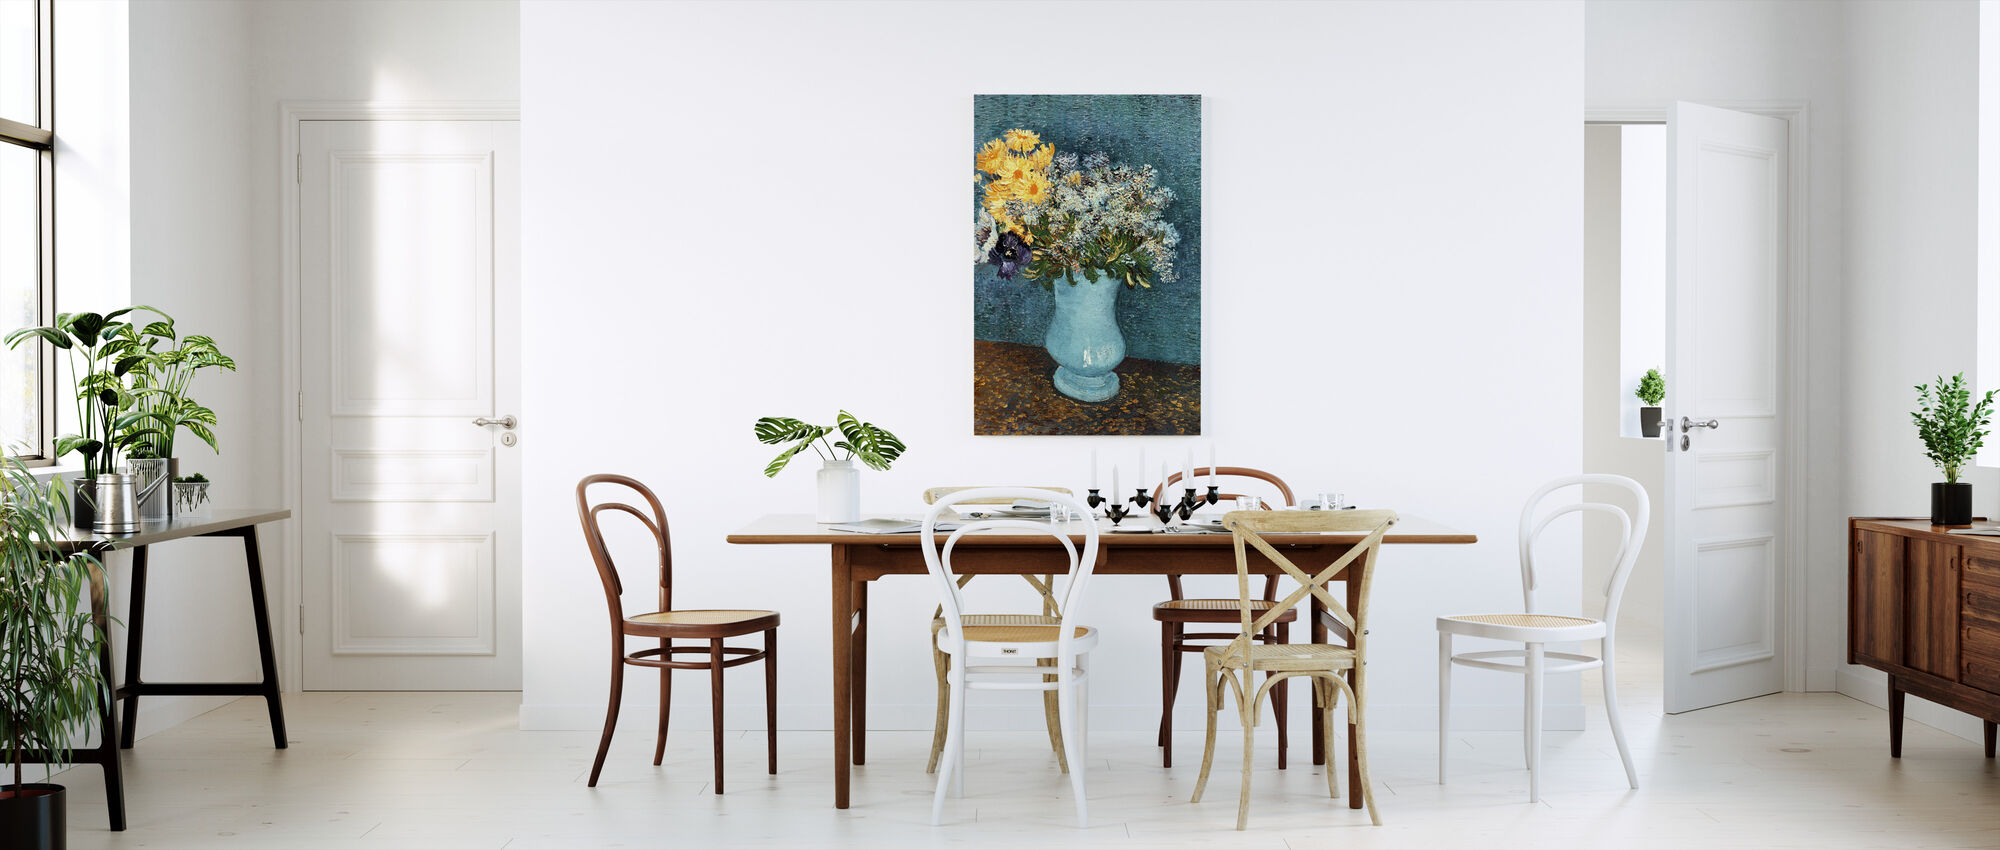 Vase with Lilacs, Daisies and Anemones, Vincent van Gogh - Canvas print - Kitchen